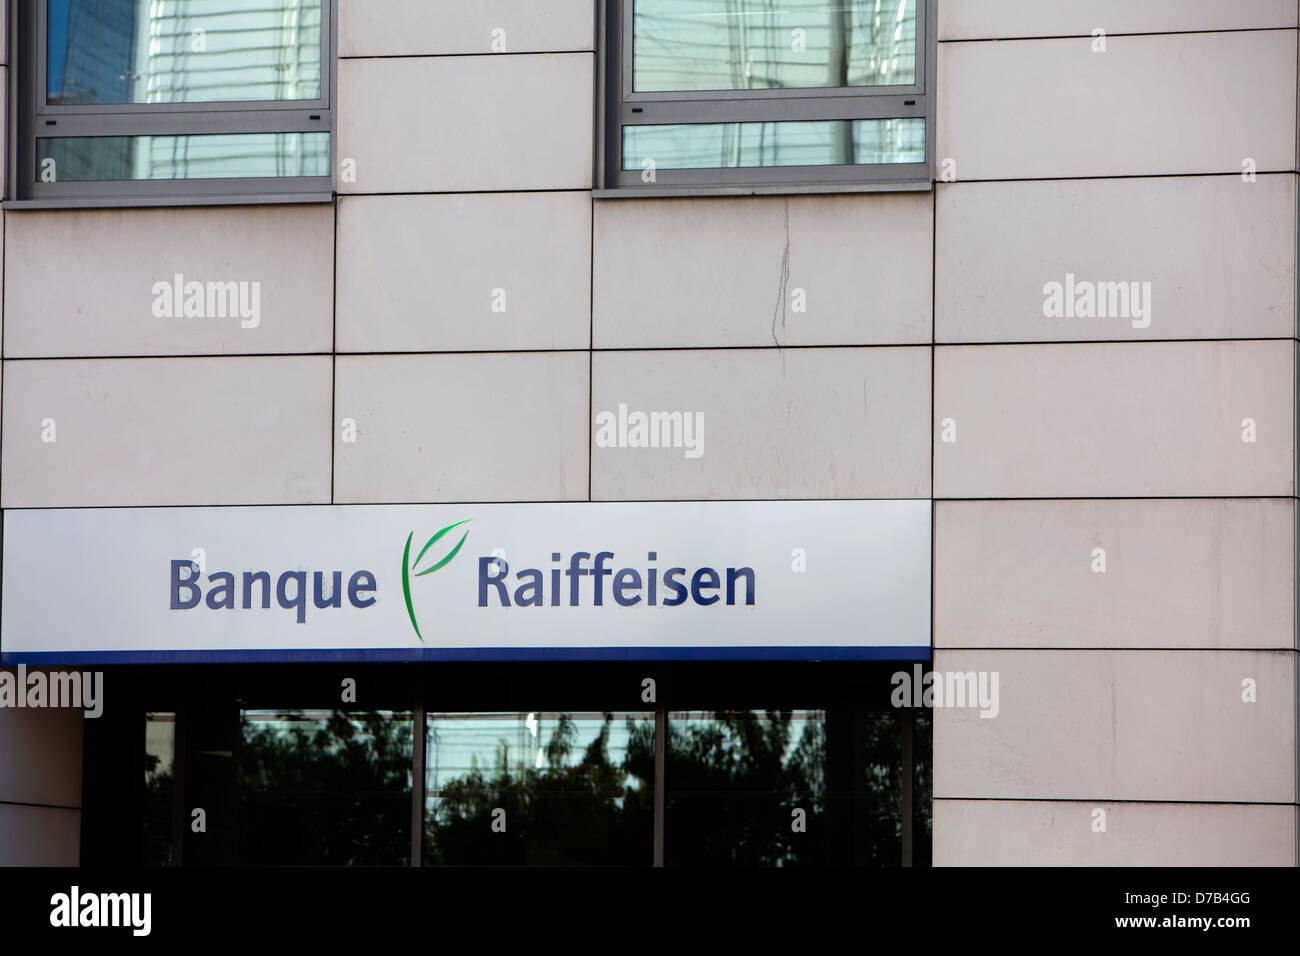 Building of the Banque Raiffeisen bank, Luxembourg branch, Luxembourg City, Europe - Stock Image